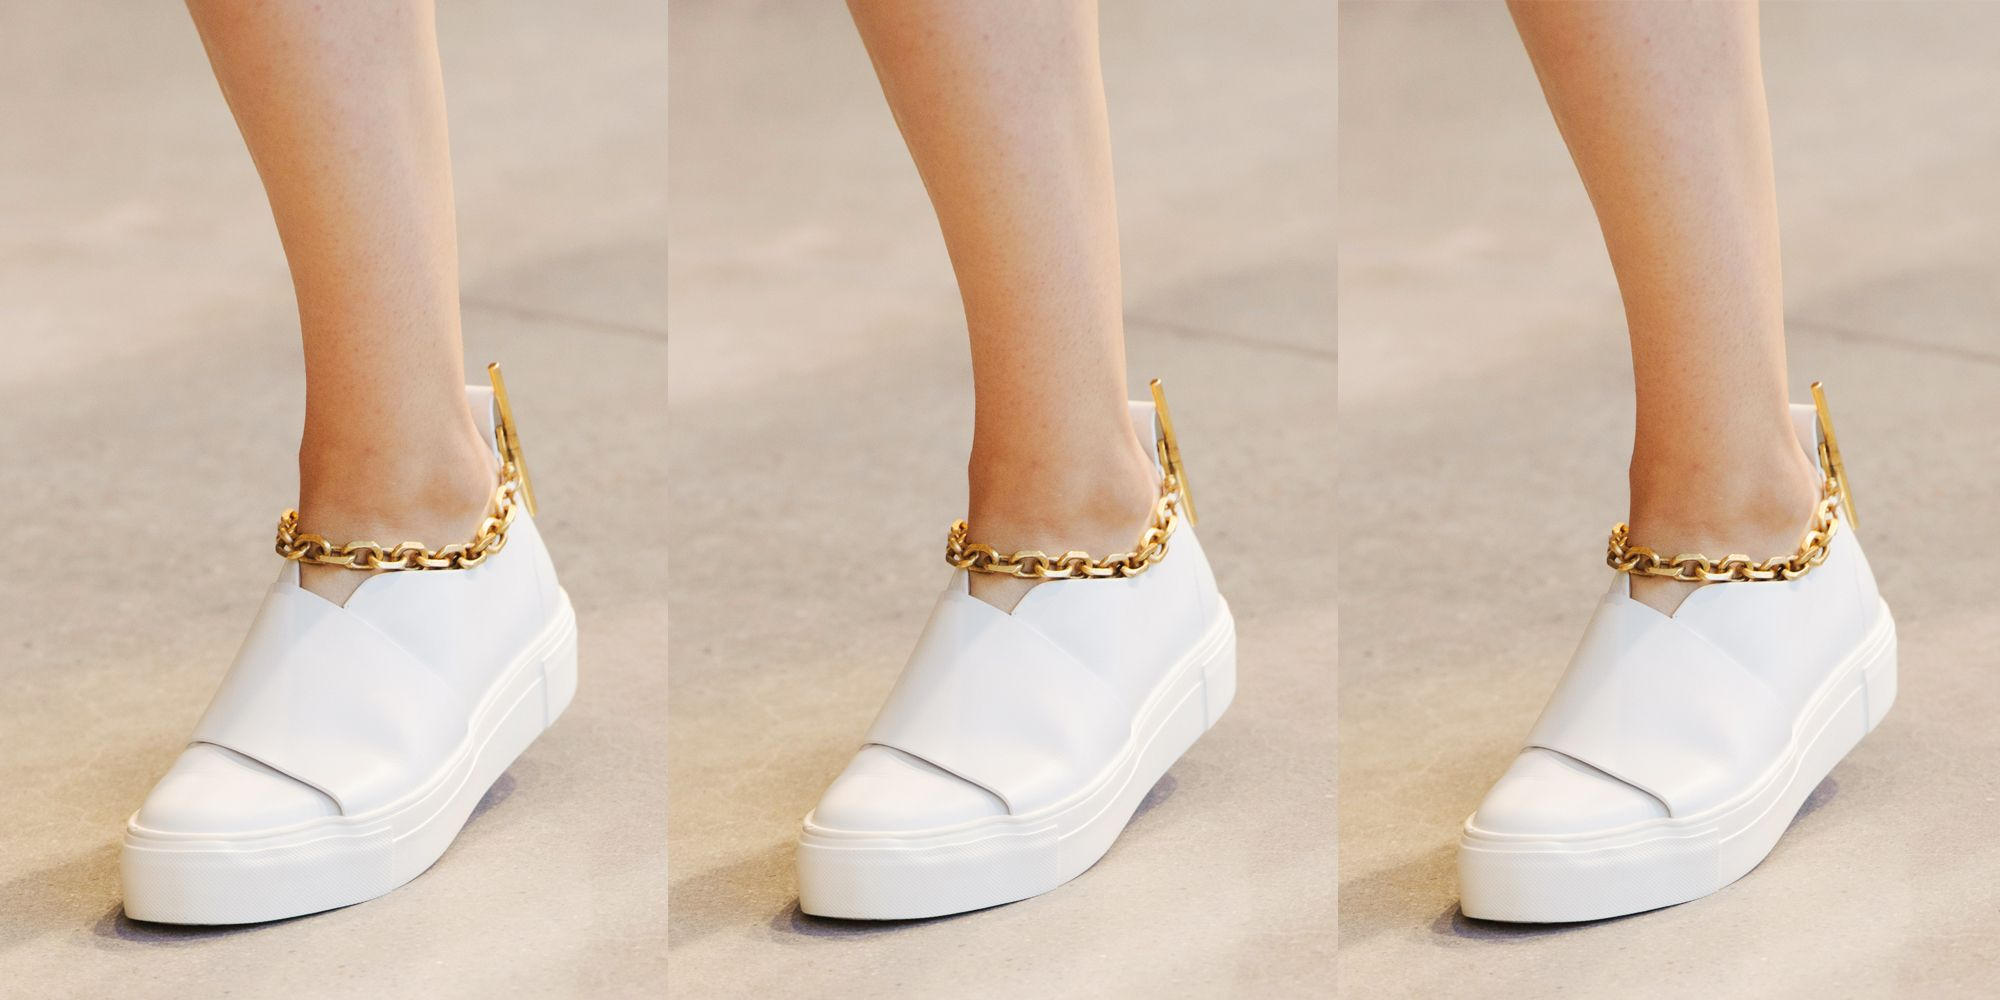 anklet trend bracelet pin anklets make to that accessory ankle you why chic sandals with summer will reconsider the is wear your